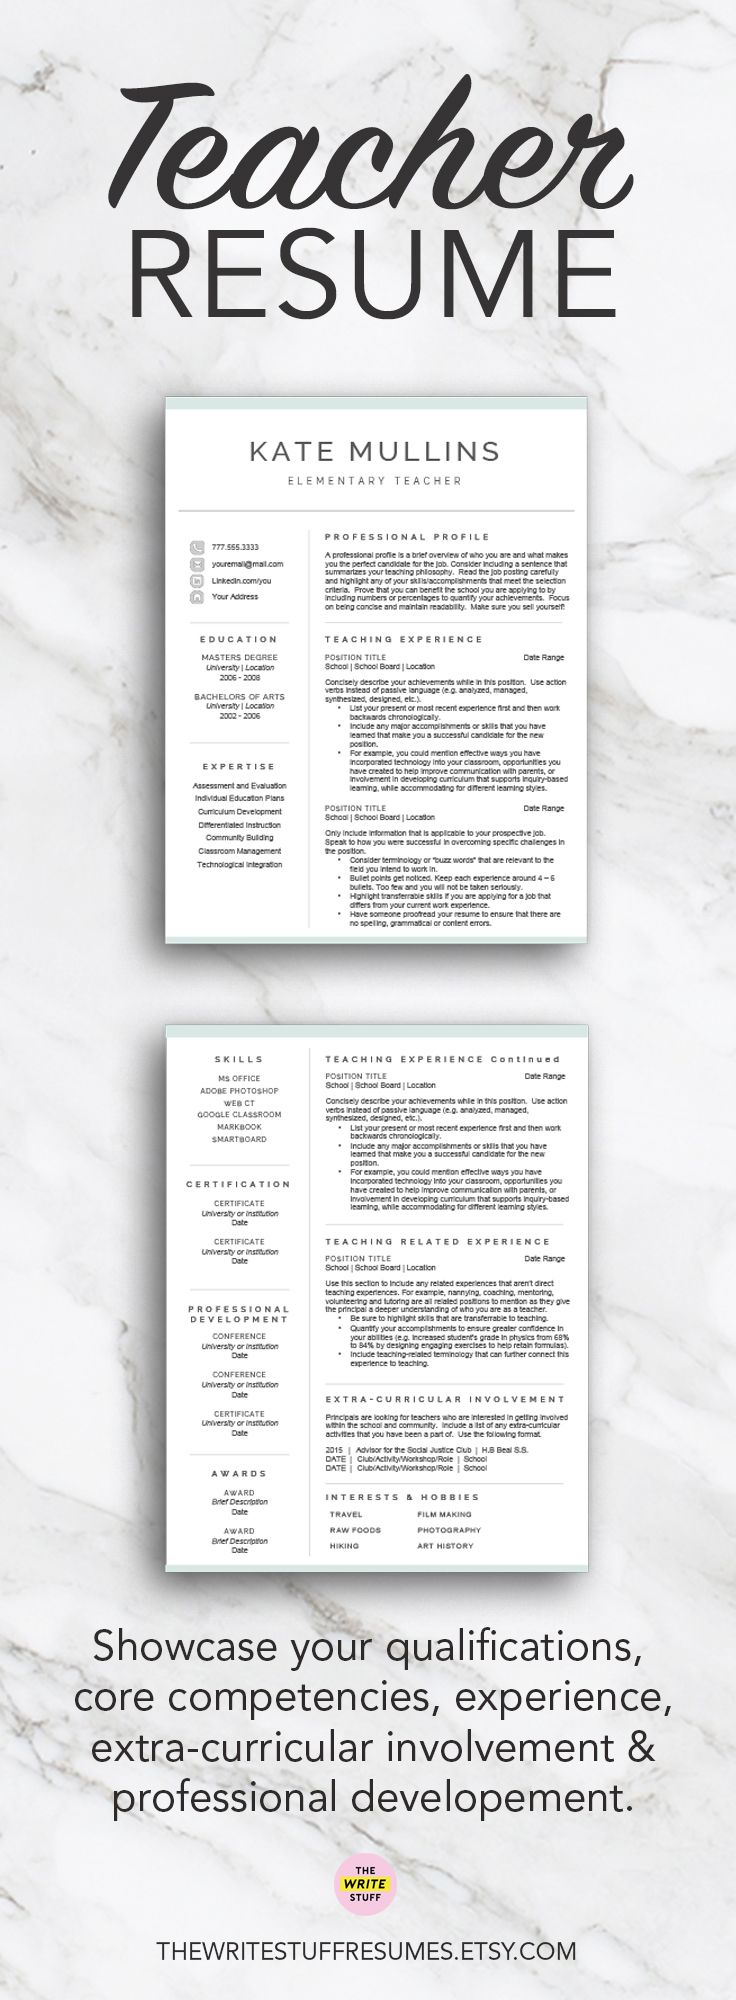 Best 25 cover letter teacher ideas on pinterest teaching cover teacher resume template for word pages 1 2 and 3 page cv template resume for teachers educator cover letter instant download madrichimfo Images